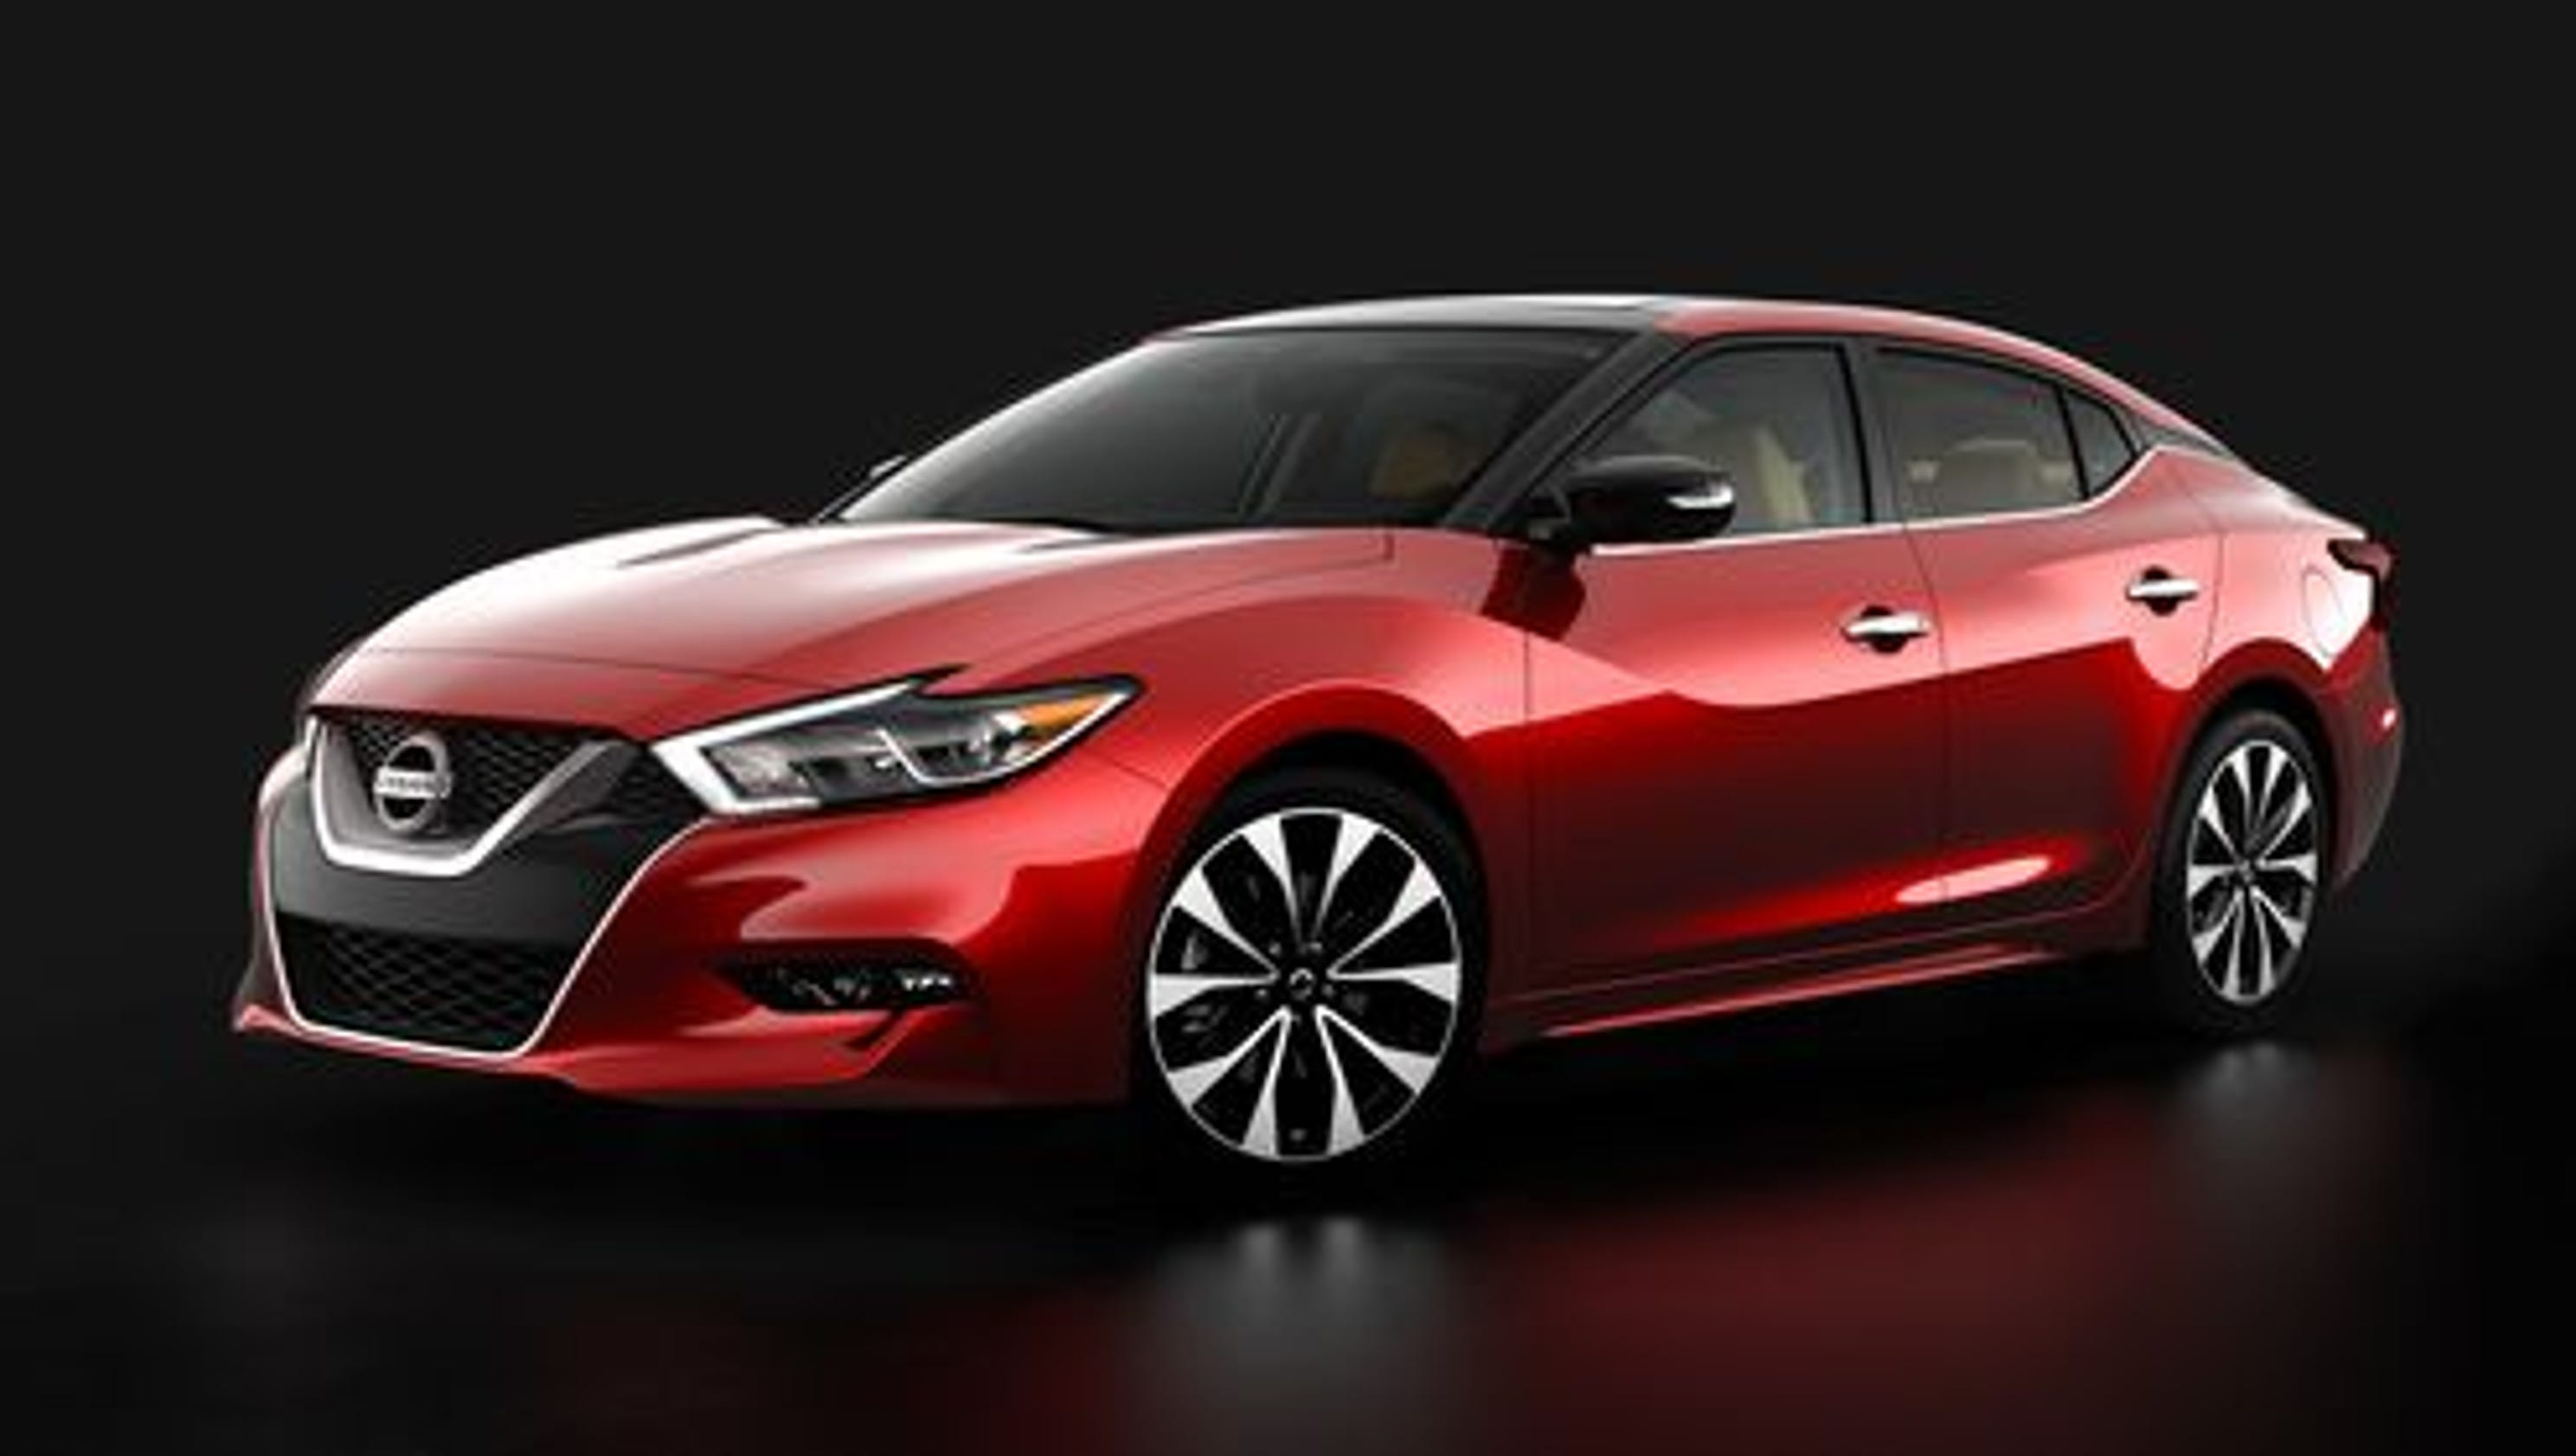 right nissan done red maxima sports sedan side maxim a driver dose